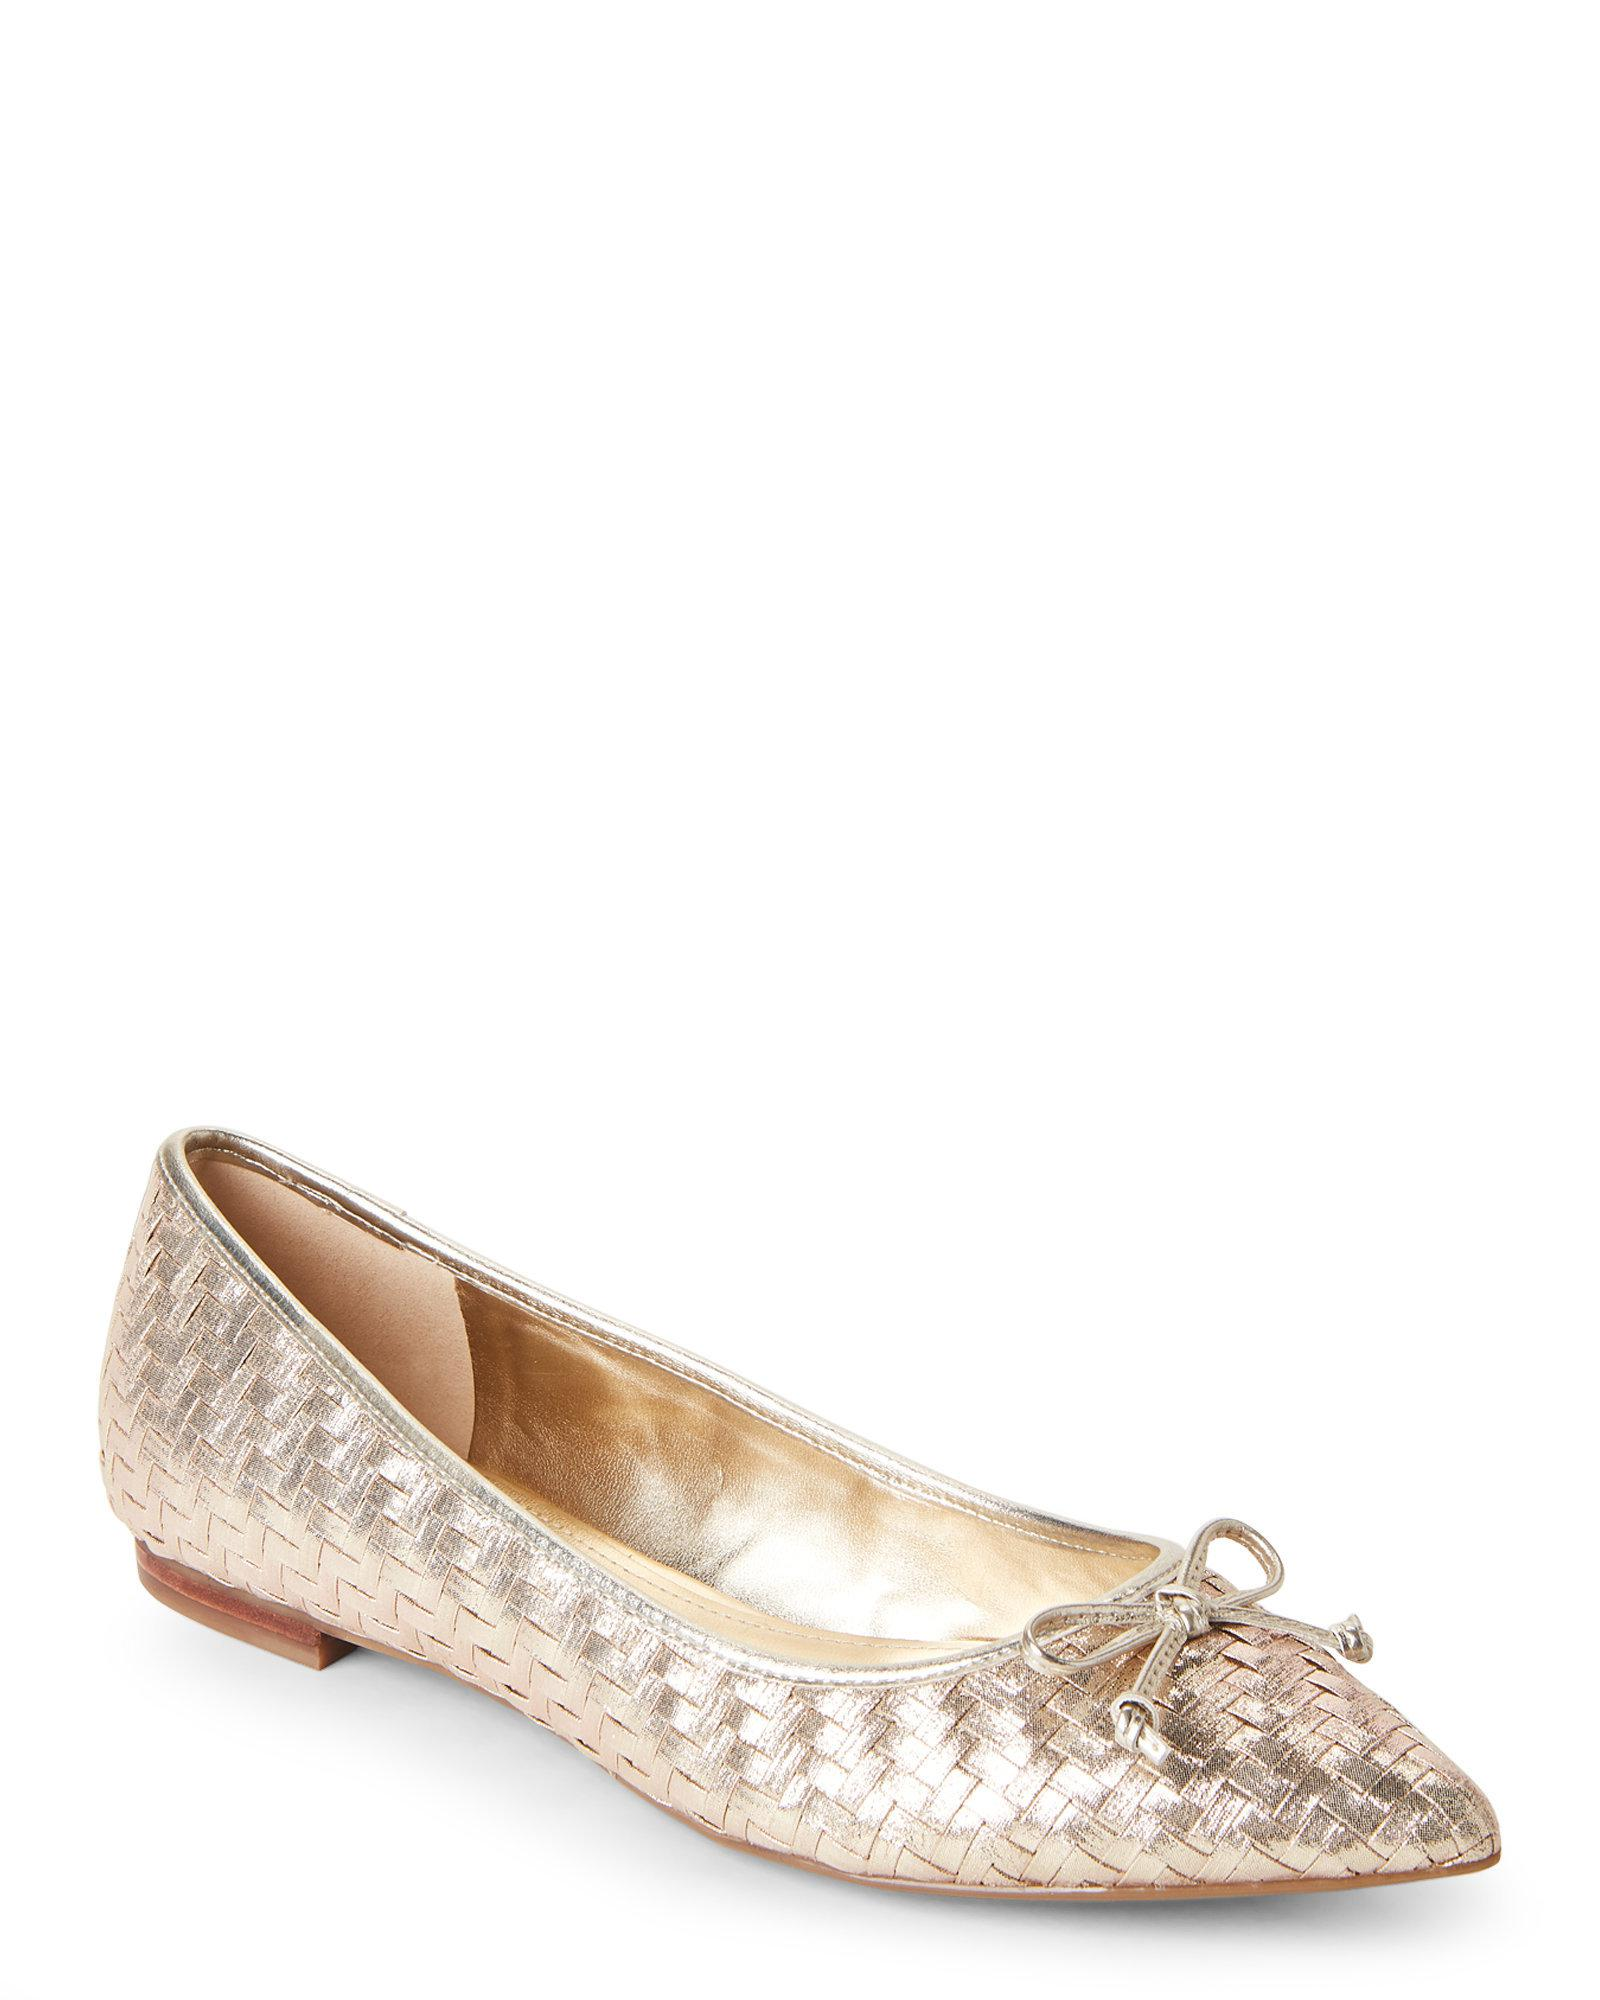 Marc Fisher Suede Bow Flats quality free shipping real for sale 7ZwLeH